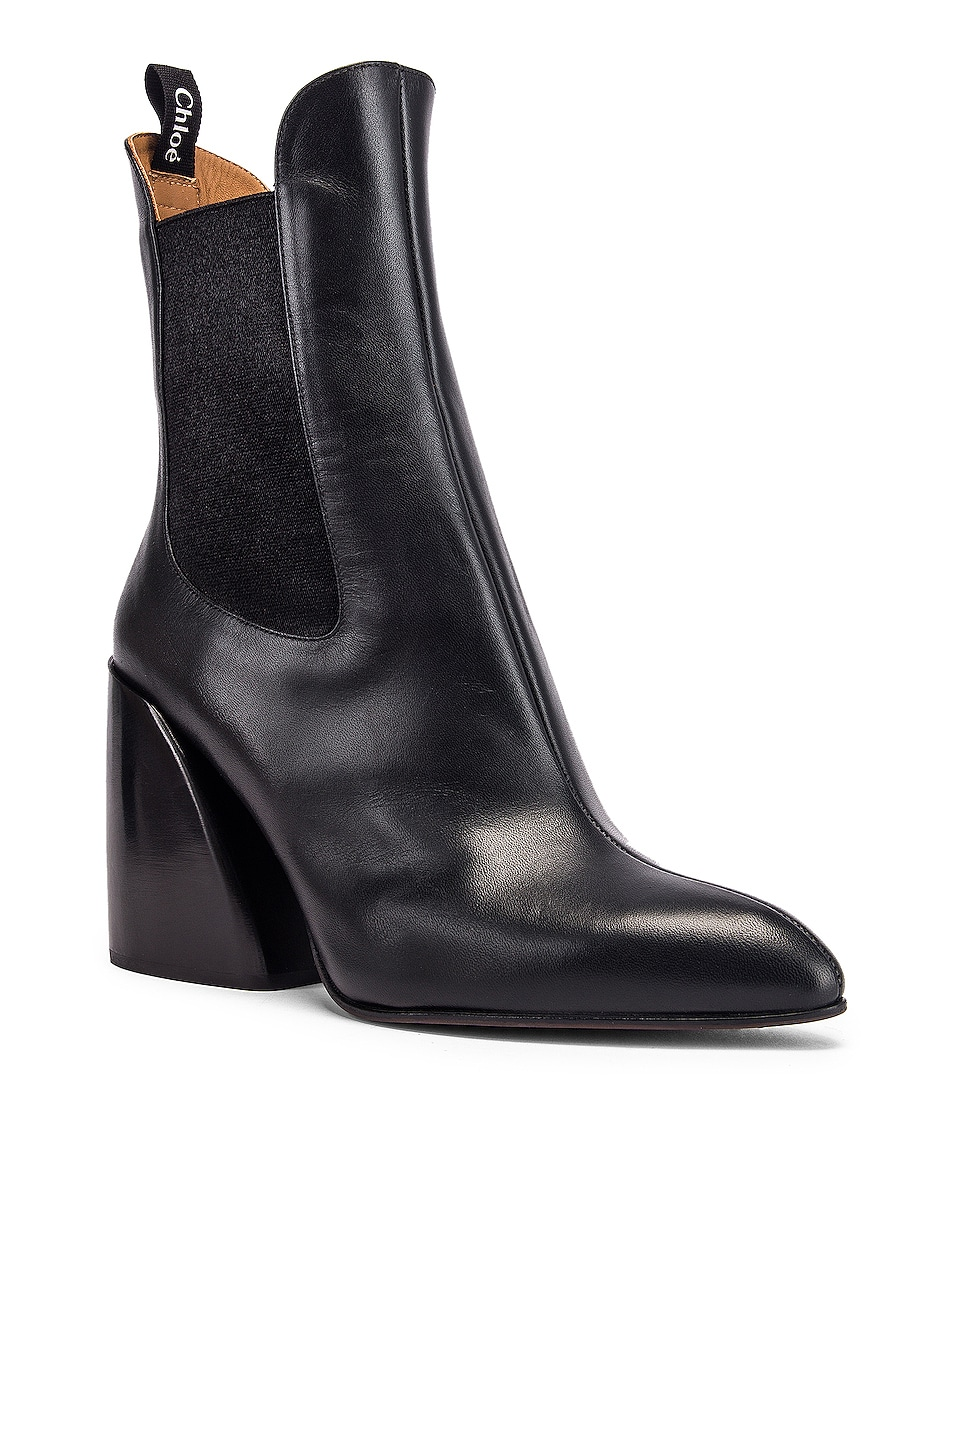 Image 2 of Chloe Leather Ankle Booties in Black